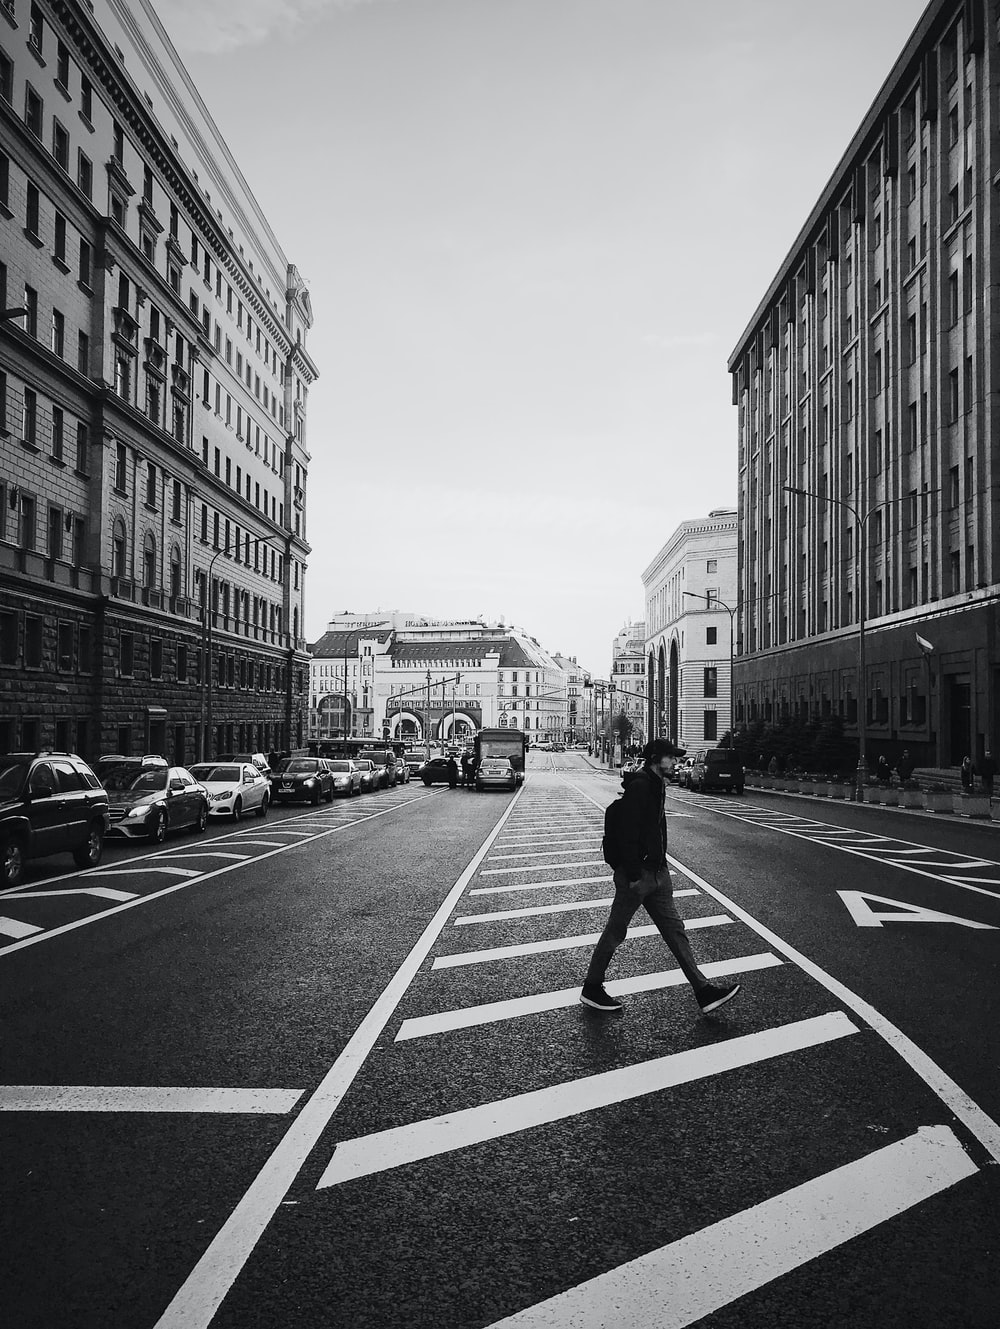 man walking on the street between high-rise building